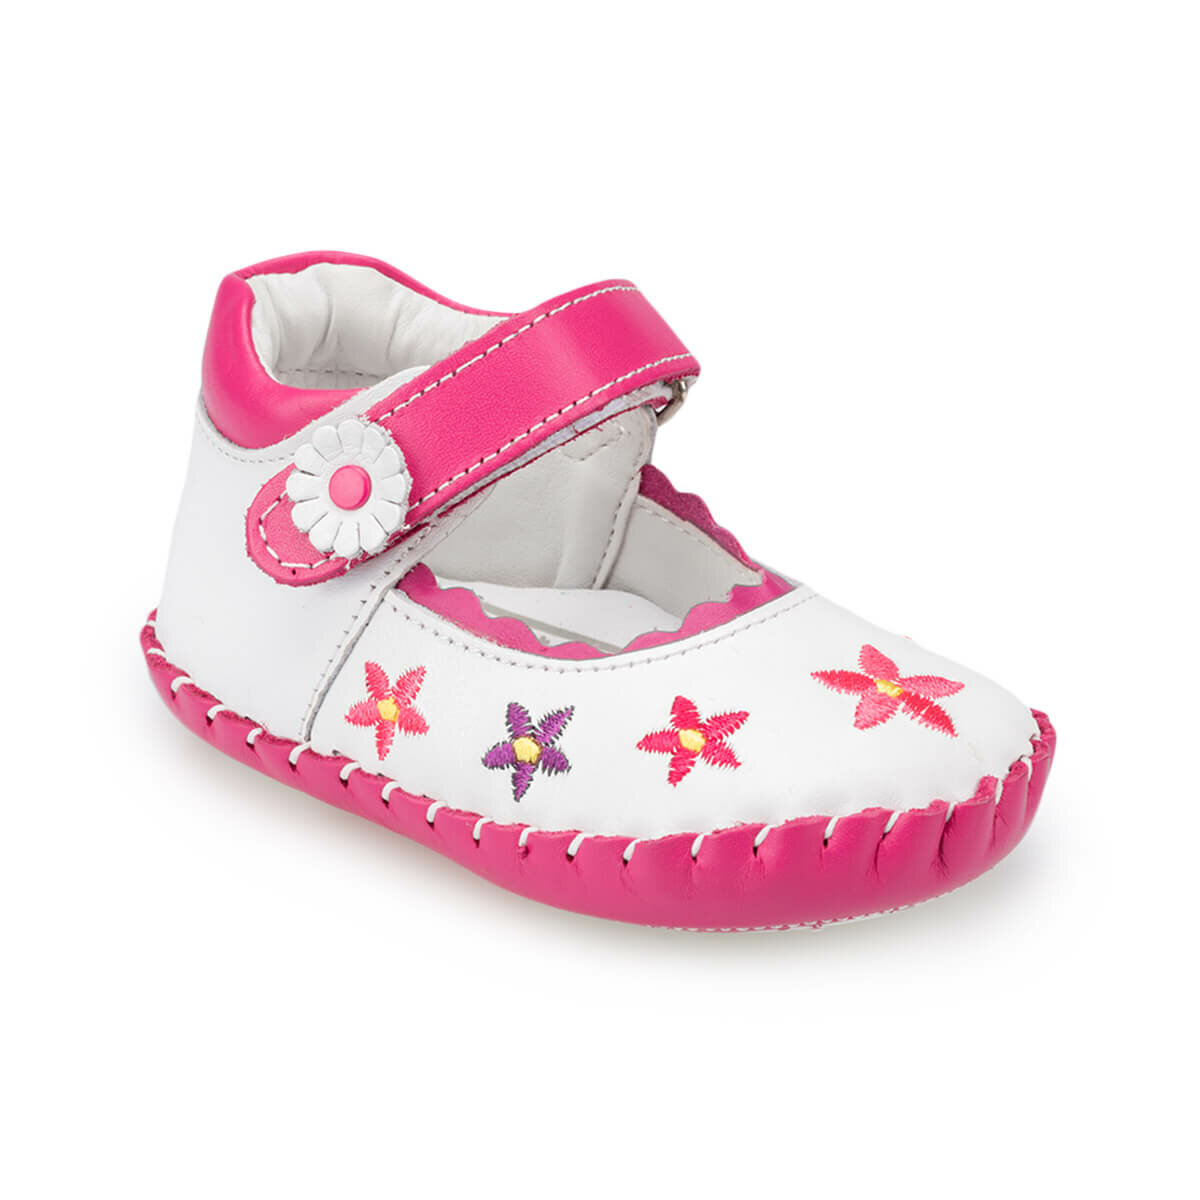 FLO 91.511387.I White Female Child Shoes Polaris